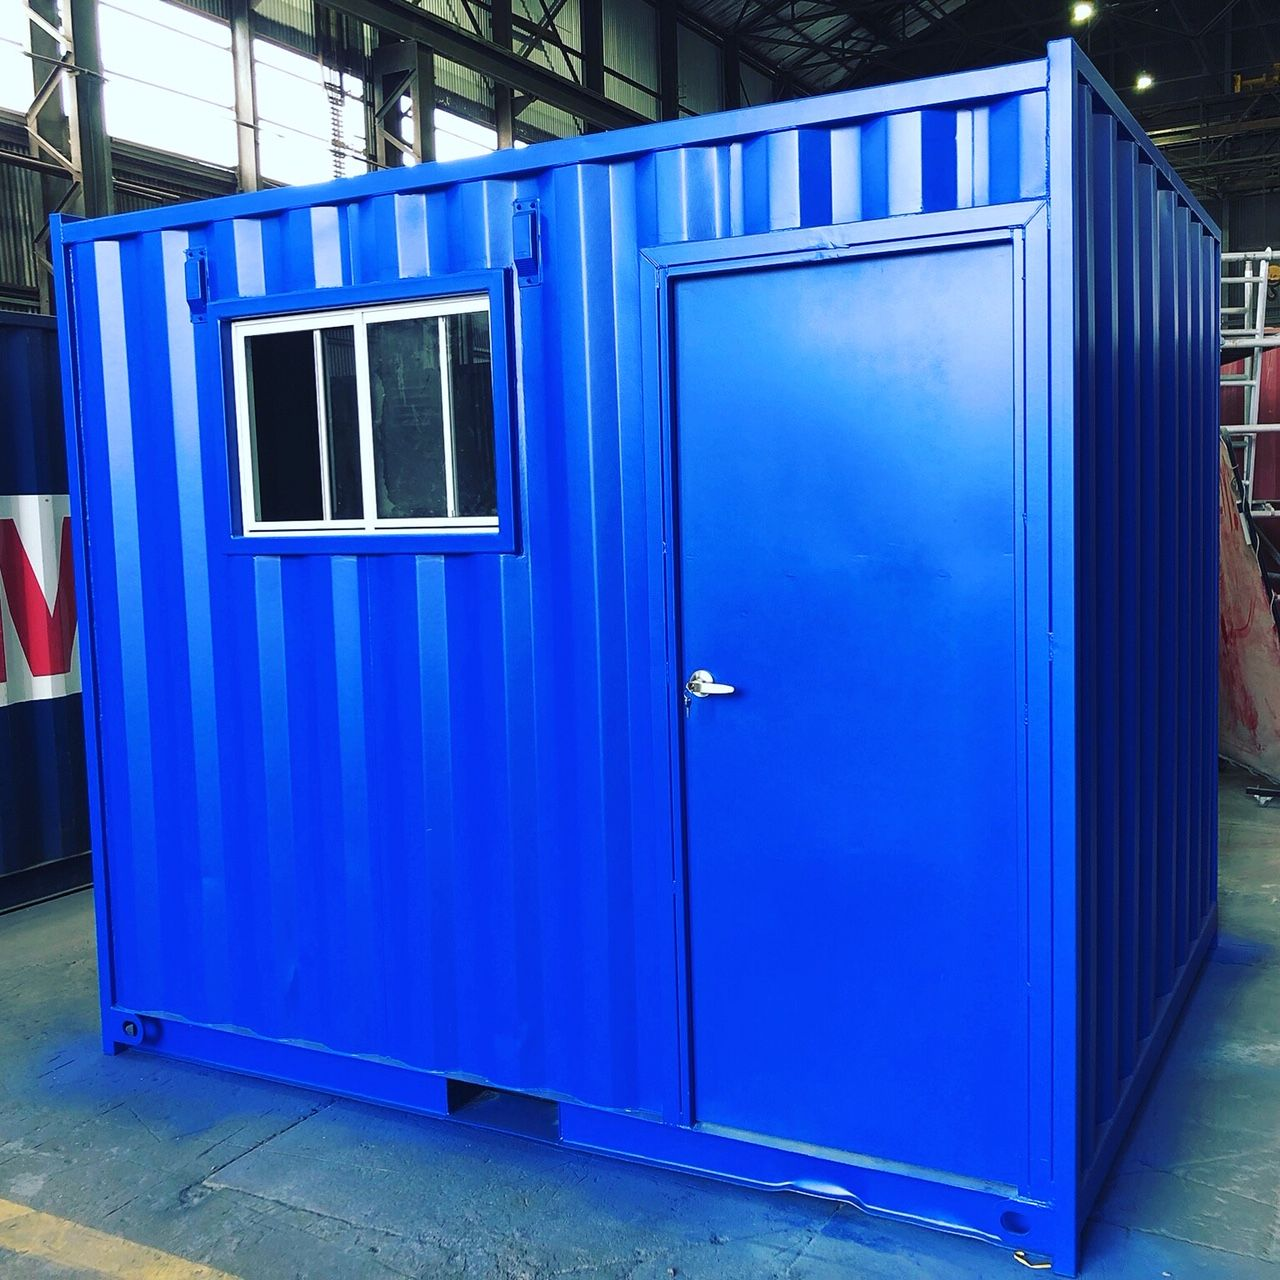 Buy 10ft Shipping Containers In Melbourne Containerspace Shipping Container Small Shipping Containers Containers For Sale